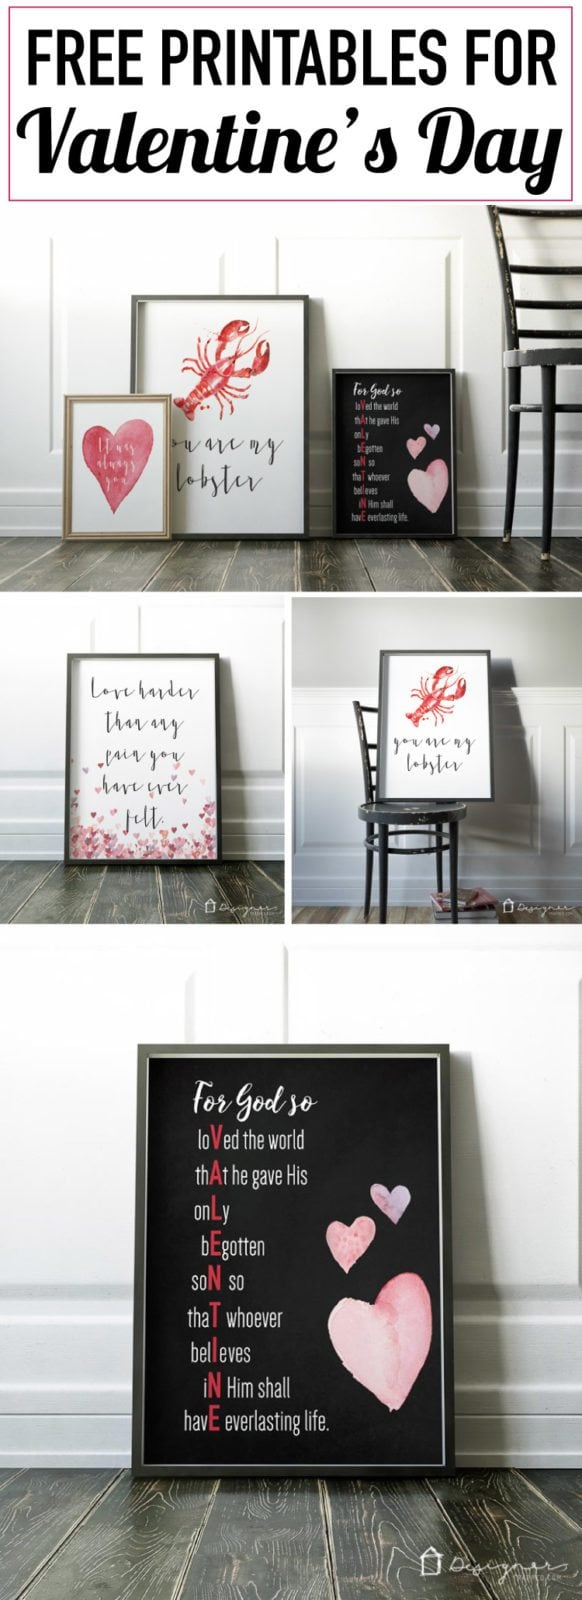 OMG, these really are the best Valentine's Day printables I have ever seen! They are perfect. And I love that they are free Valentine's printables. Can't wait to print them off and frame a few this year!